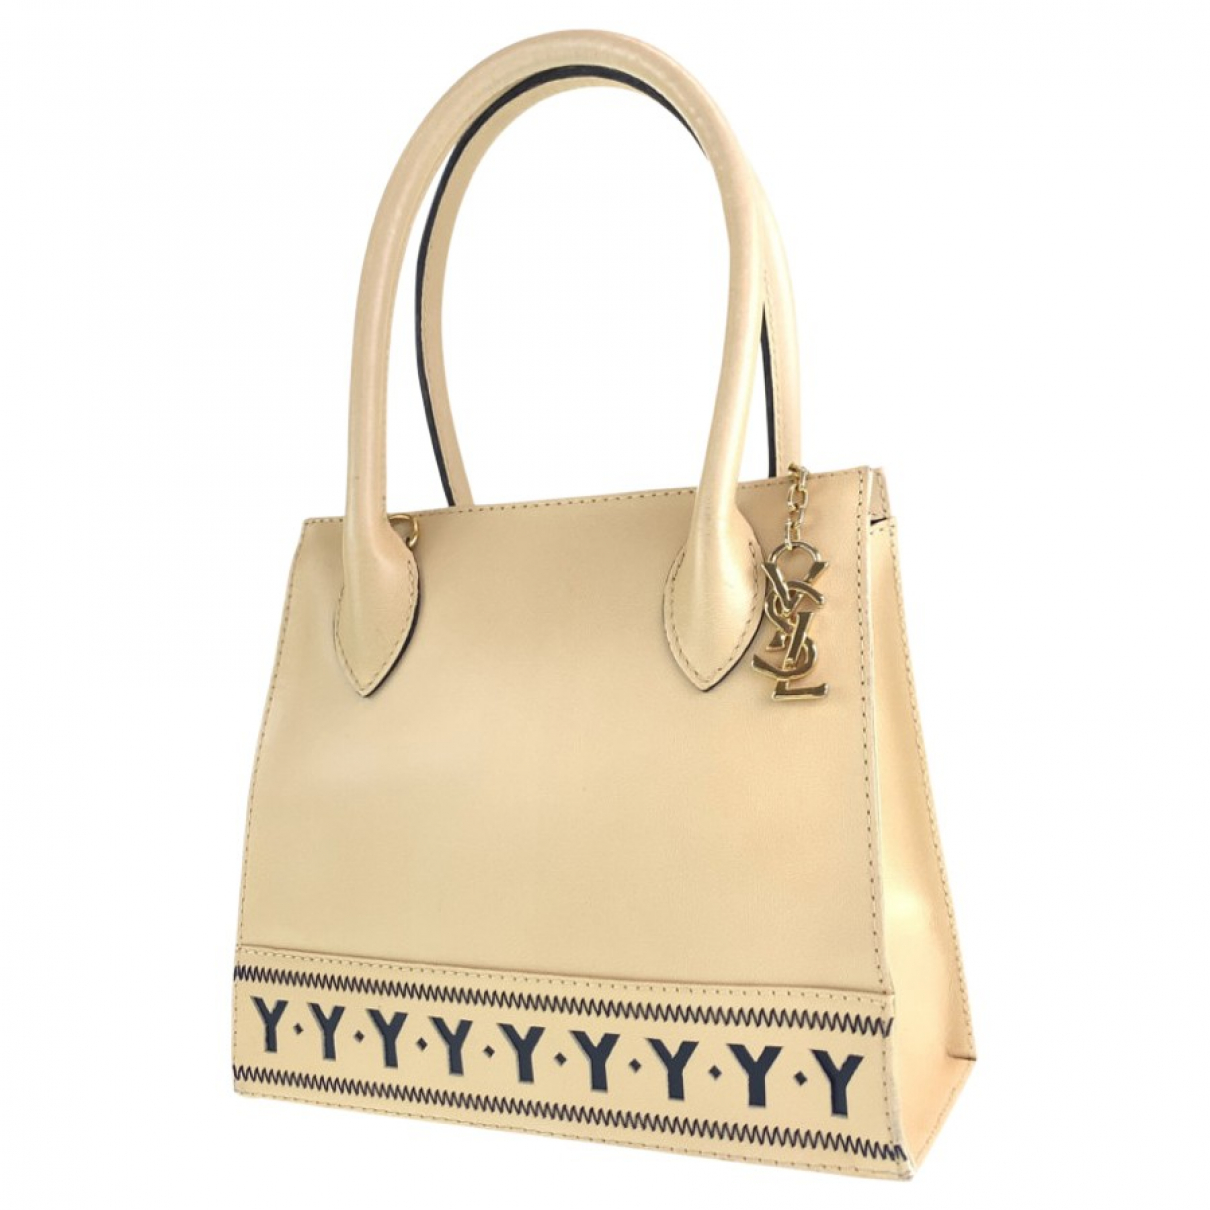 Yves Saint Laurent \N Leather handbag for Women \N